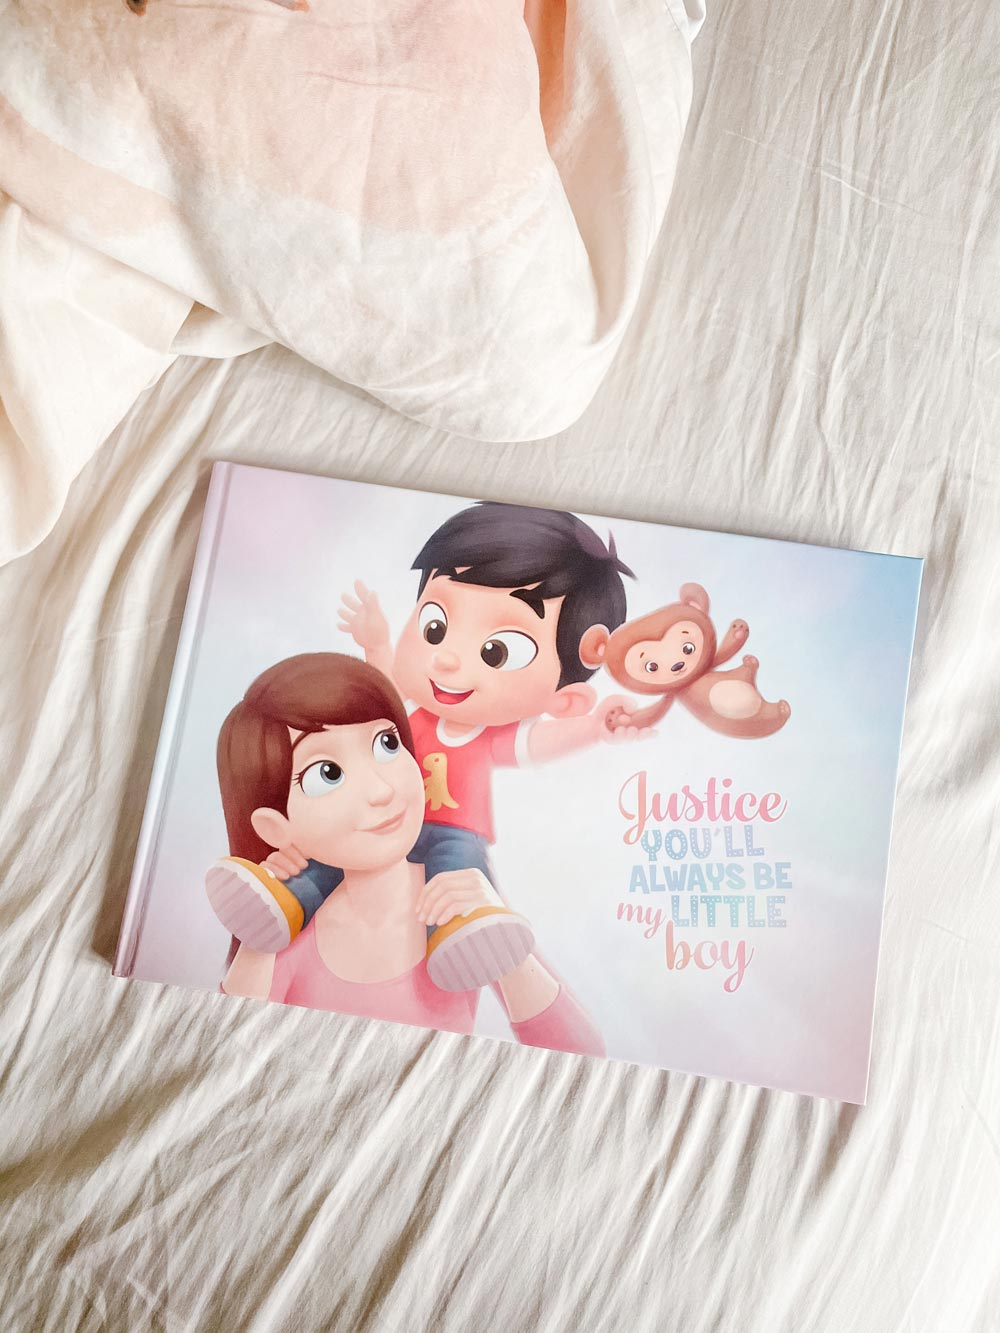 Personalized Gift Idea for Parents and Children